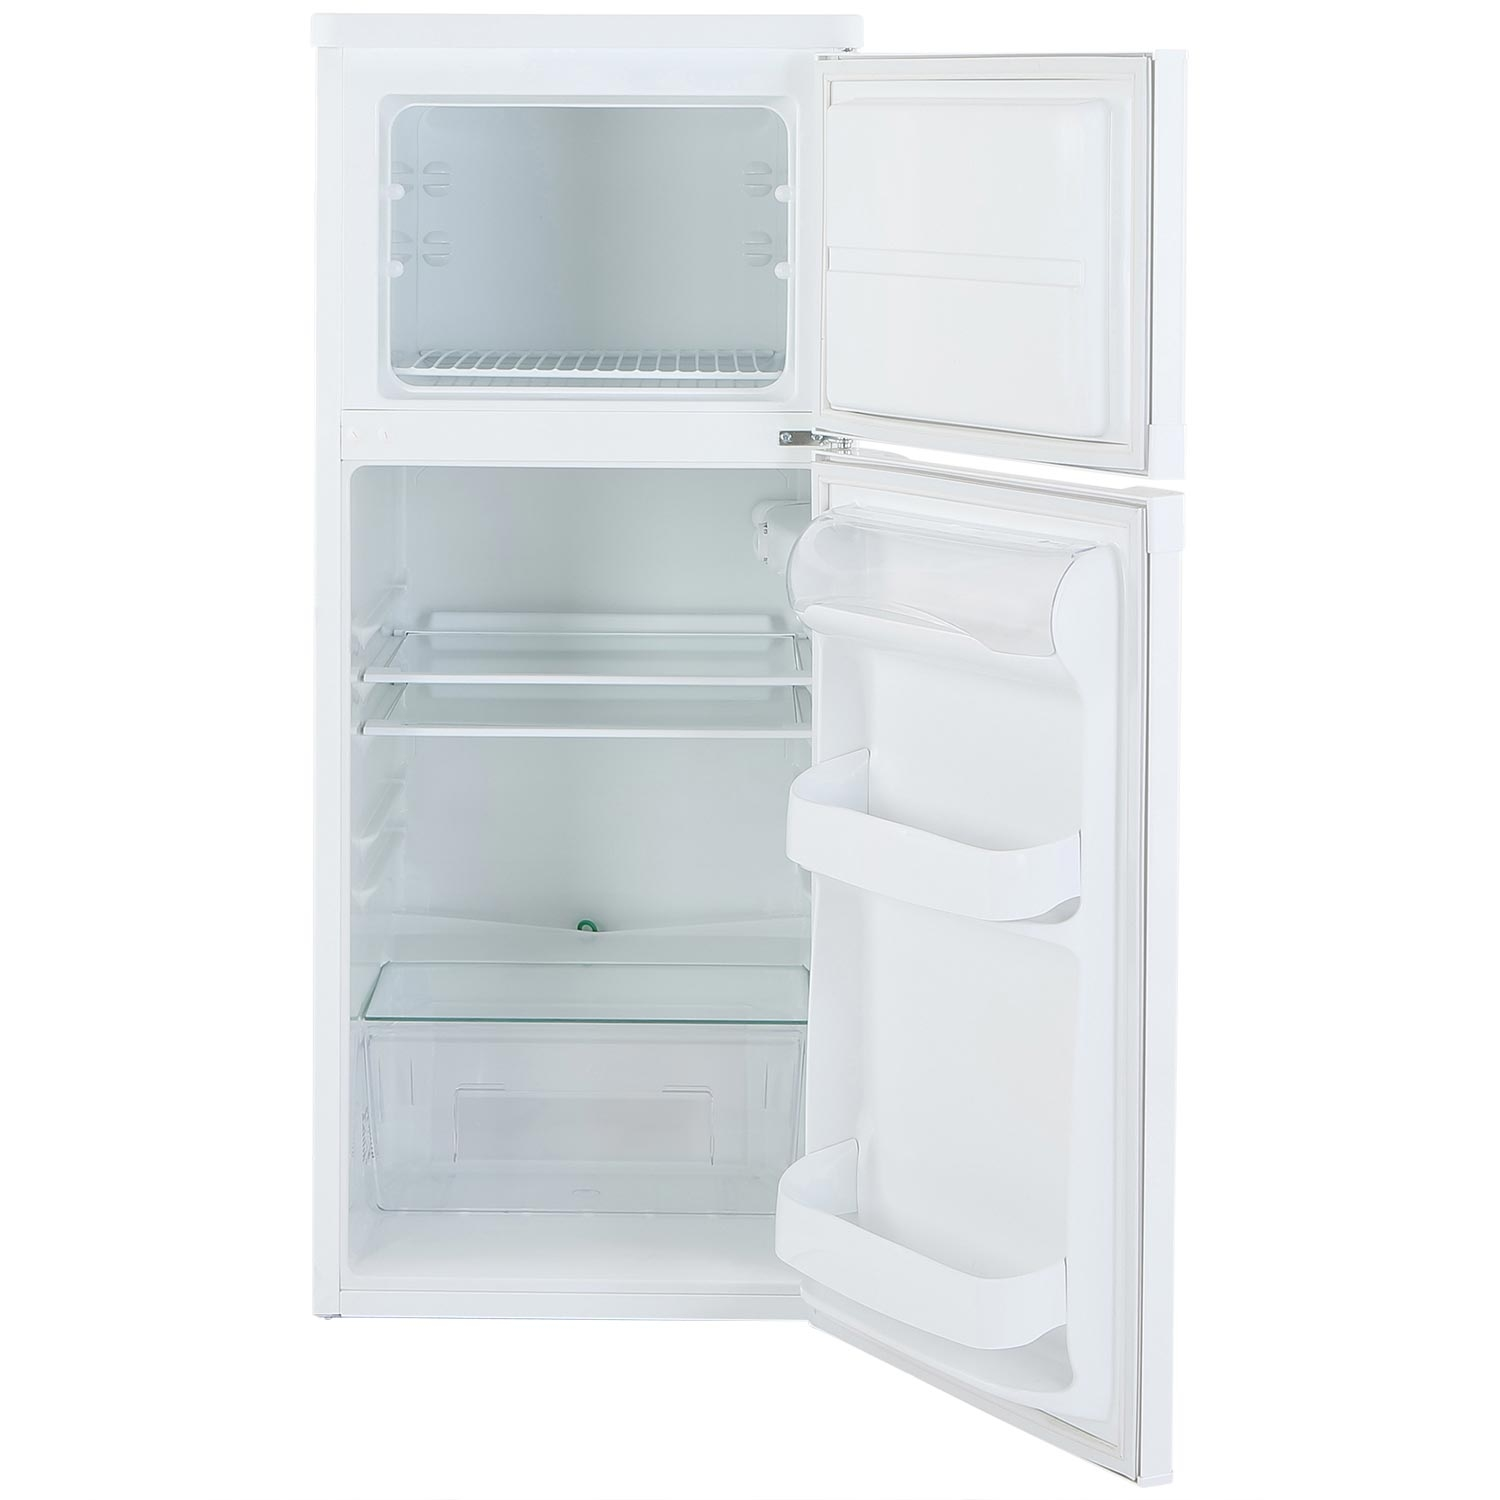 Frigidaire Compact Fridge Freezer - 0